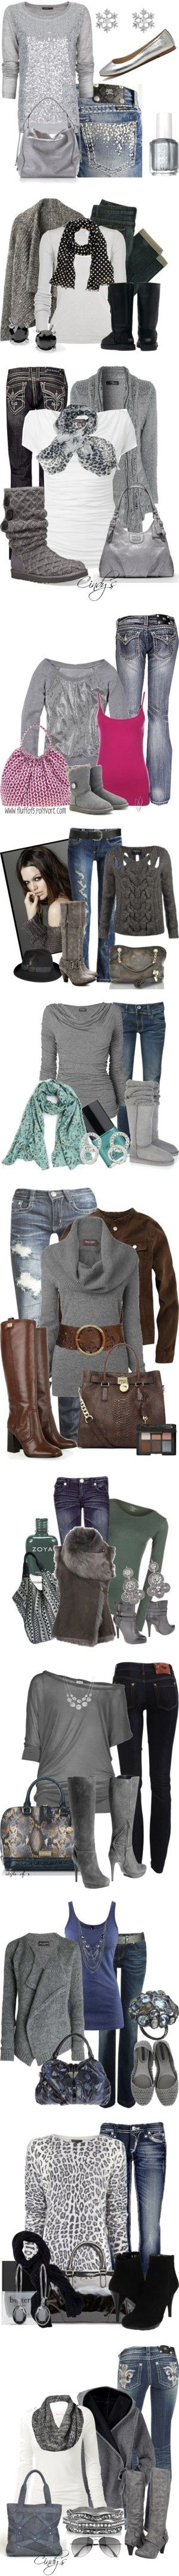 """Gray"" by ljjenness ❤ liked on Polyvore"